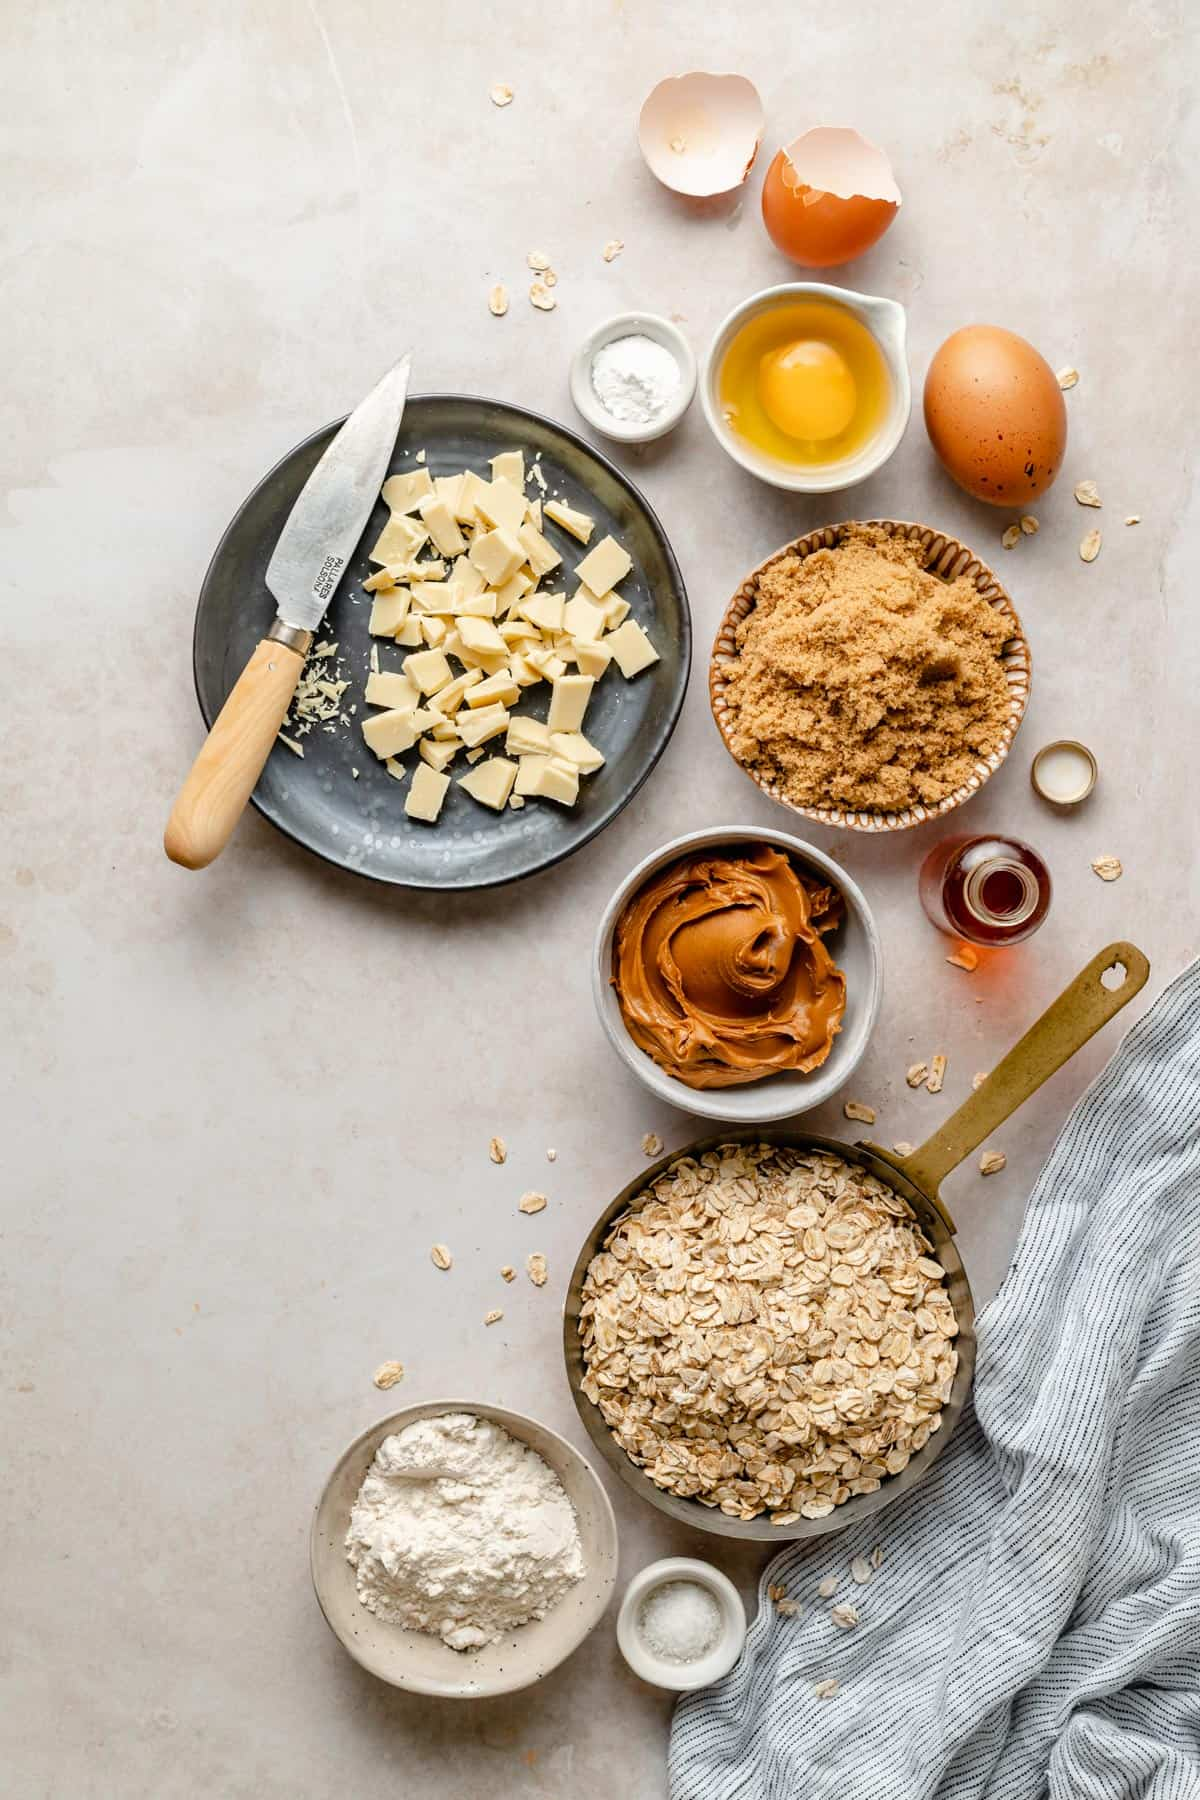 Ingredients for the recipe in separate dishes